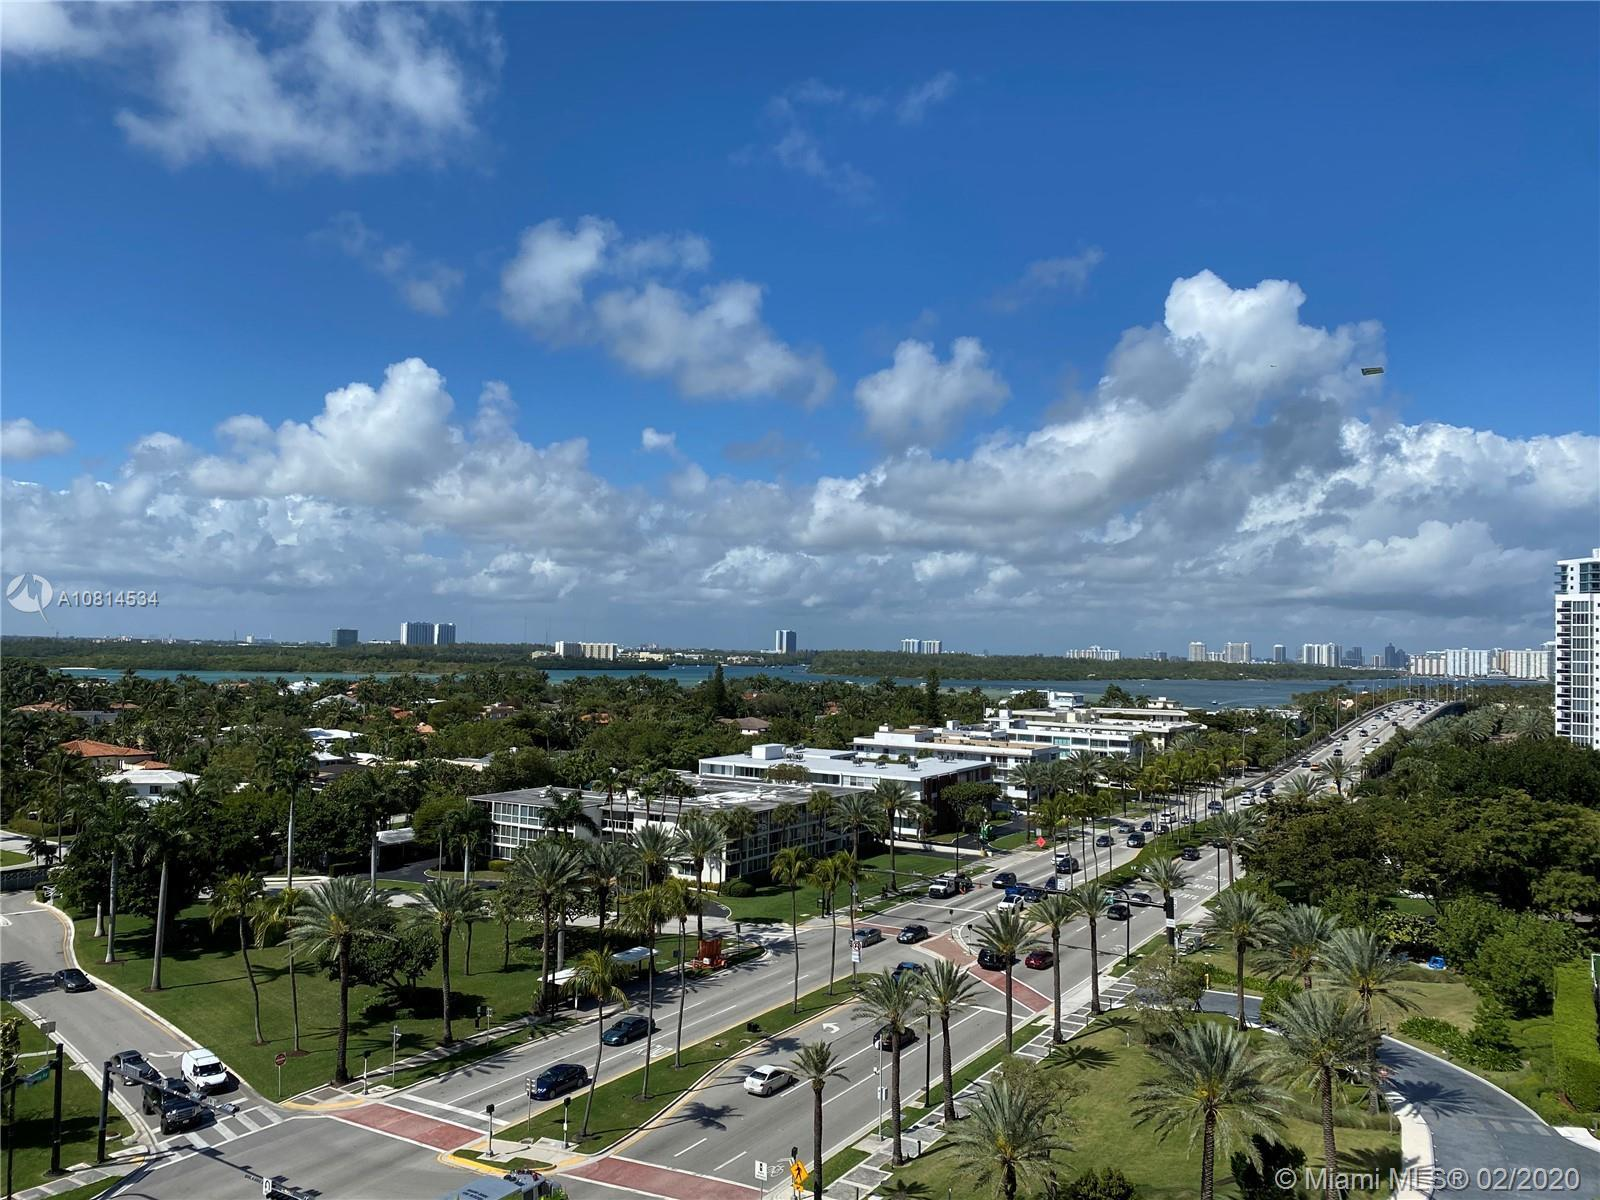 EXCLUSIVE BAL HARBOUR CONDO - GREAT VIEWS OF INTRACOASTAL AND SKYLINE! ONE BEDROOM + DEN CAN BE EASI